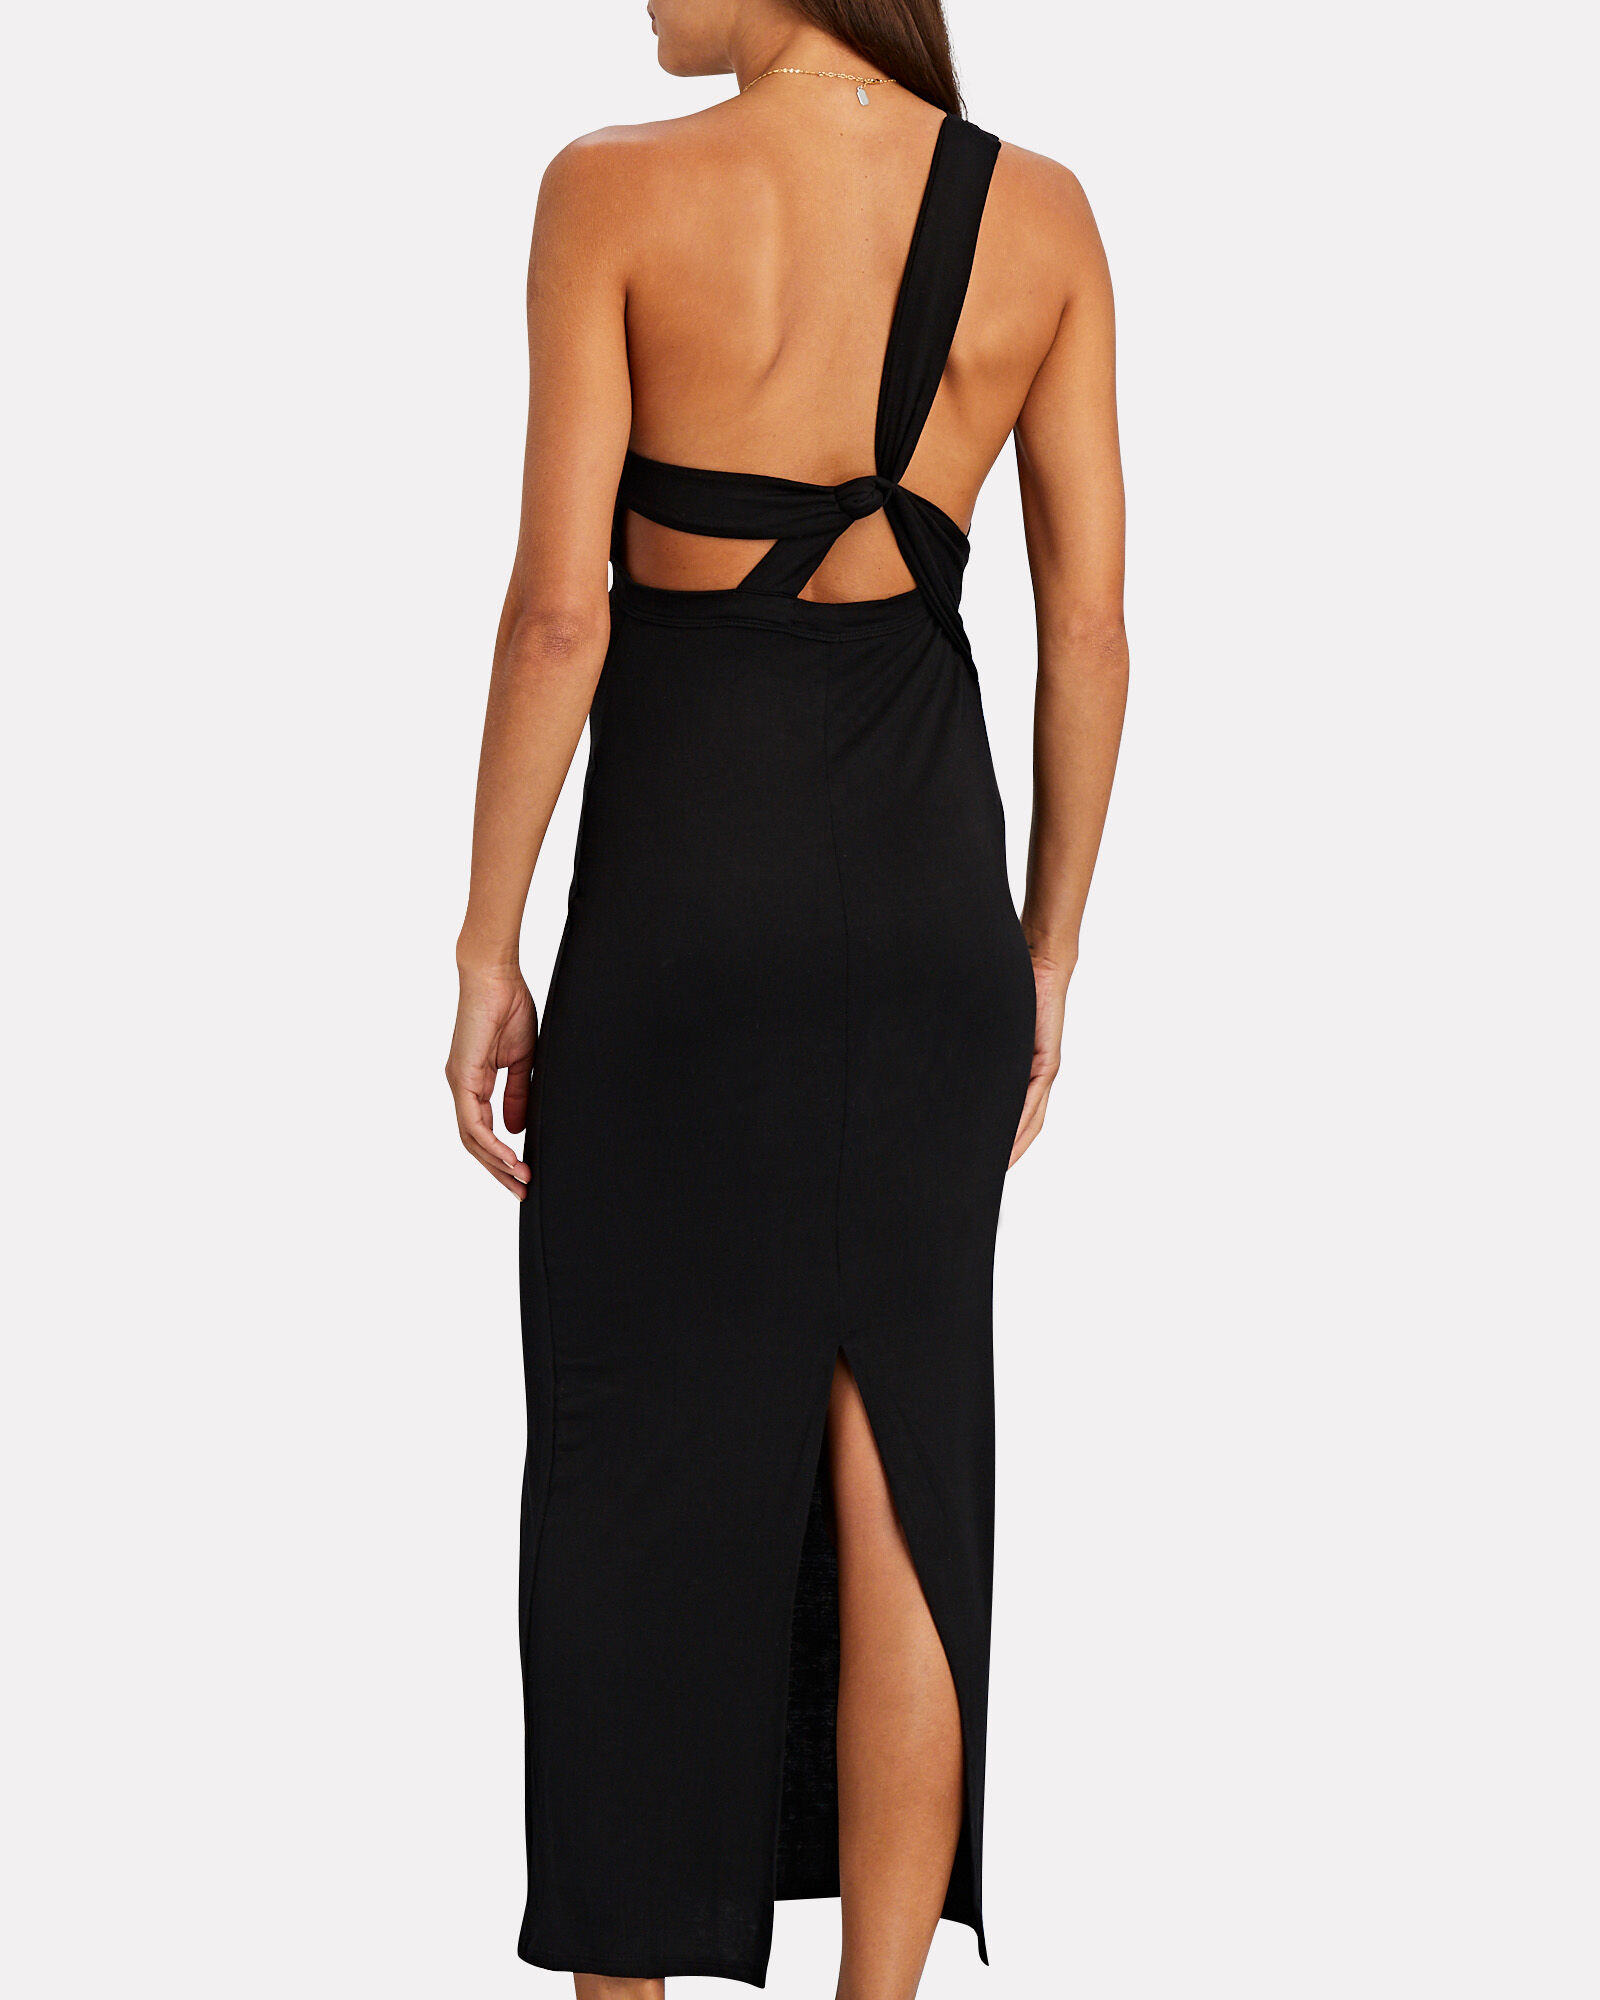 Avalon One-Shoulder Jersey Dress, BLACK, hi-res